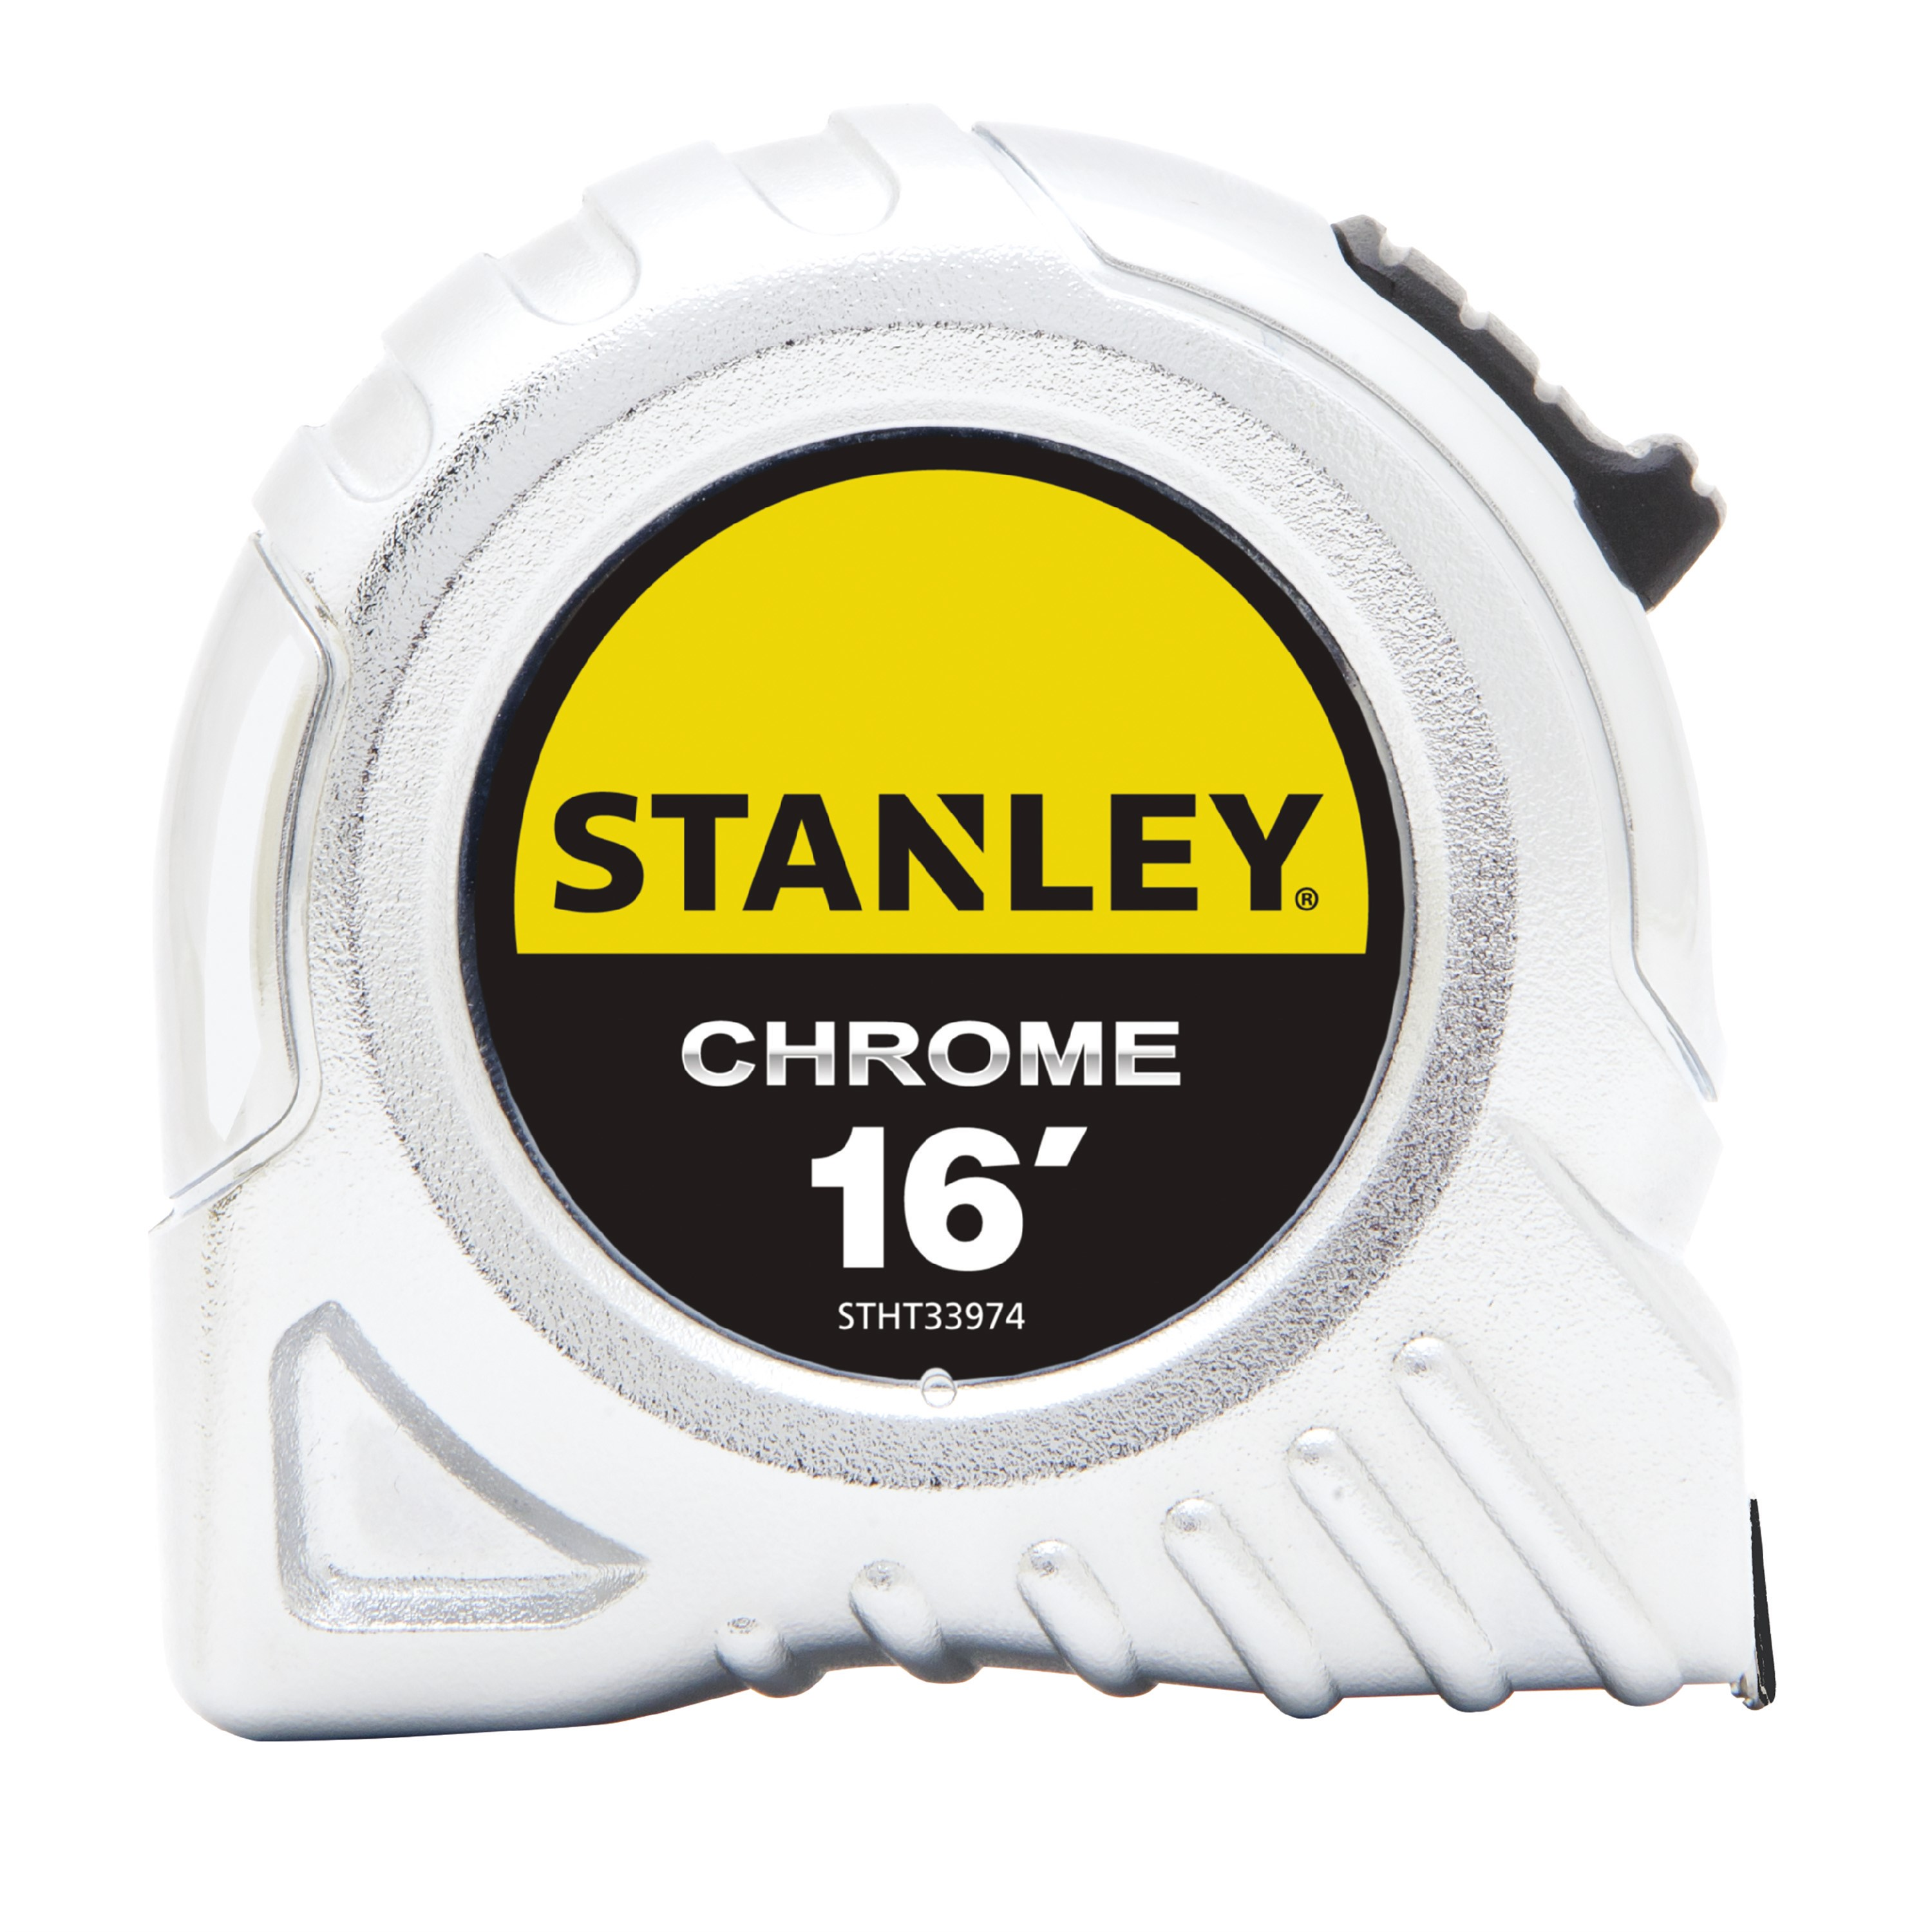 Stanley STHT33974 16ft Chrome Tape Measure